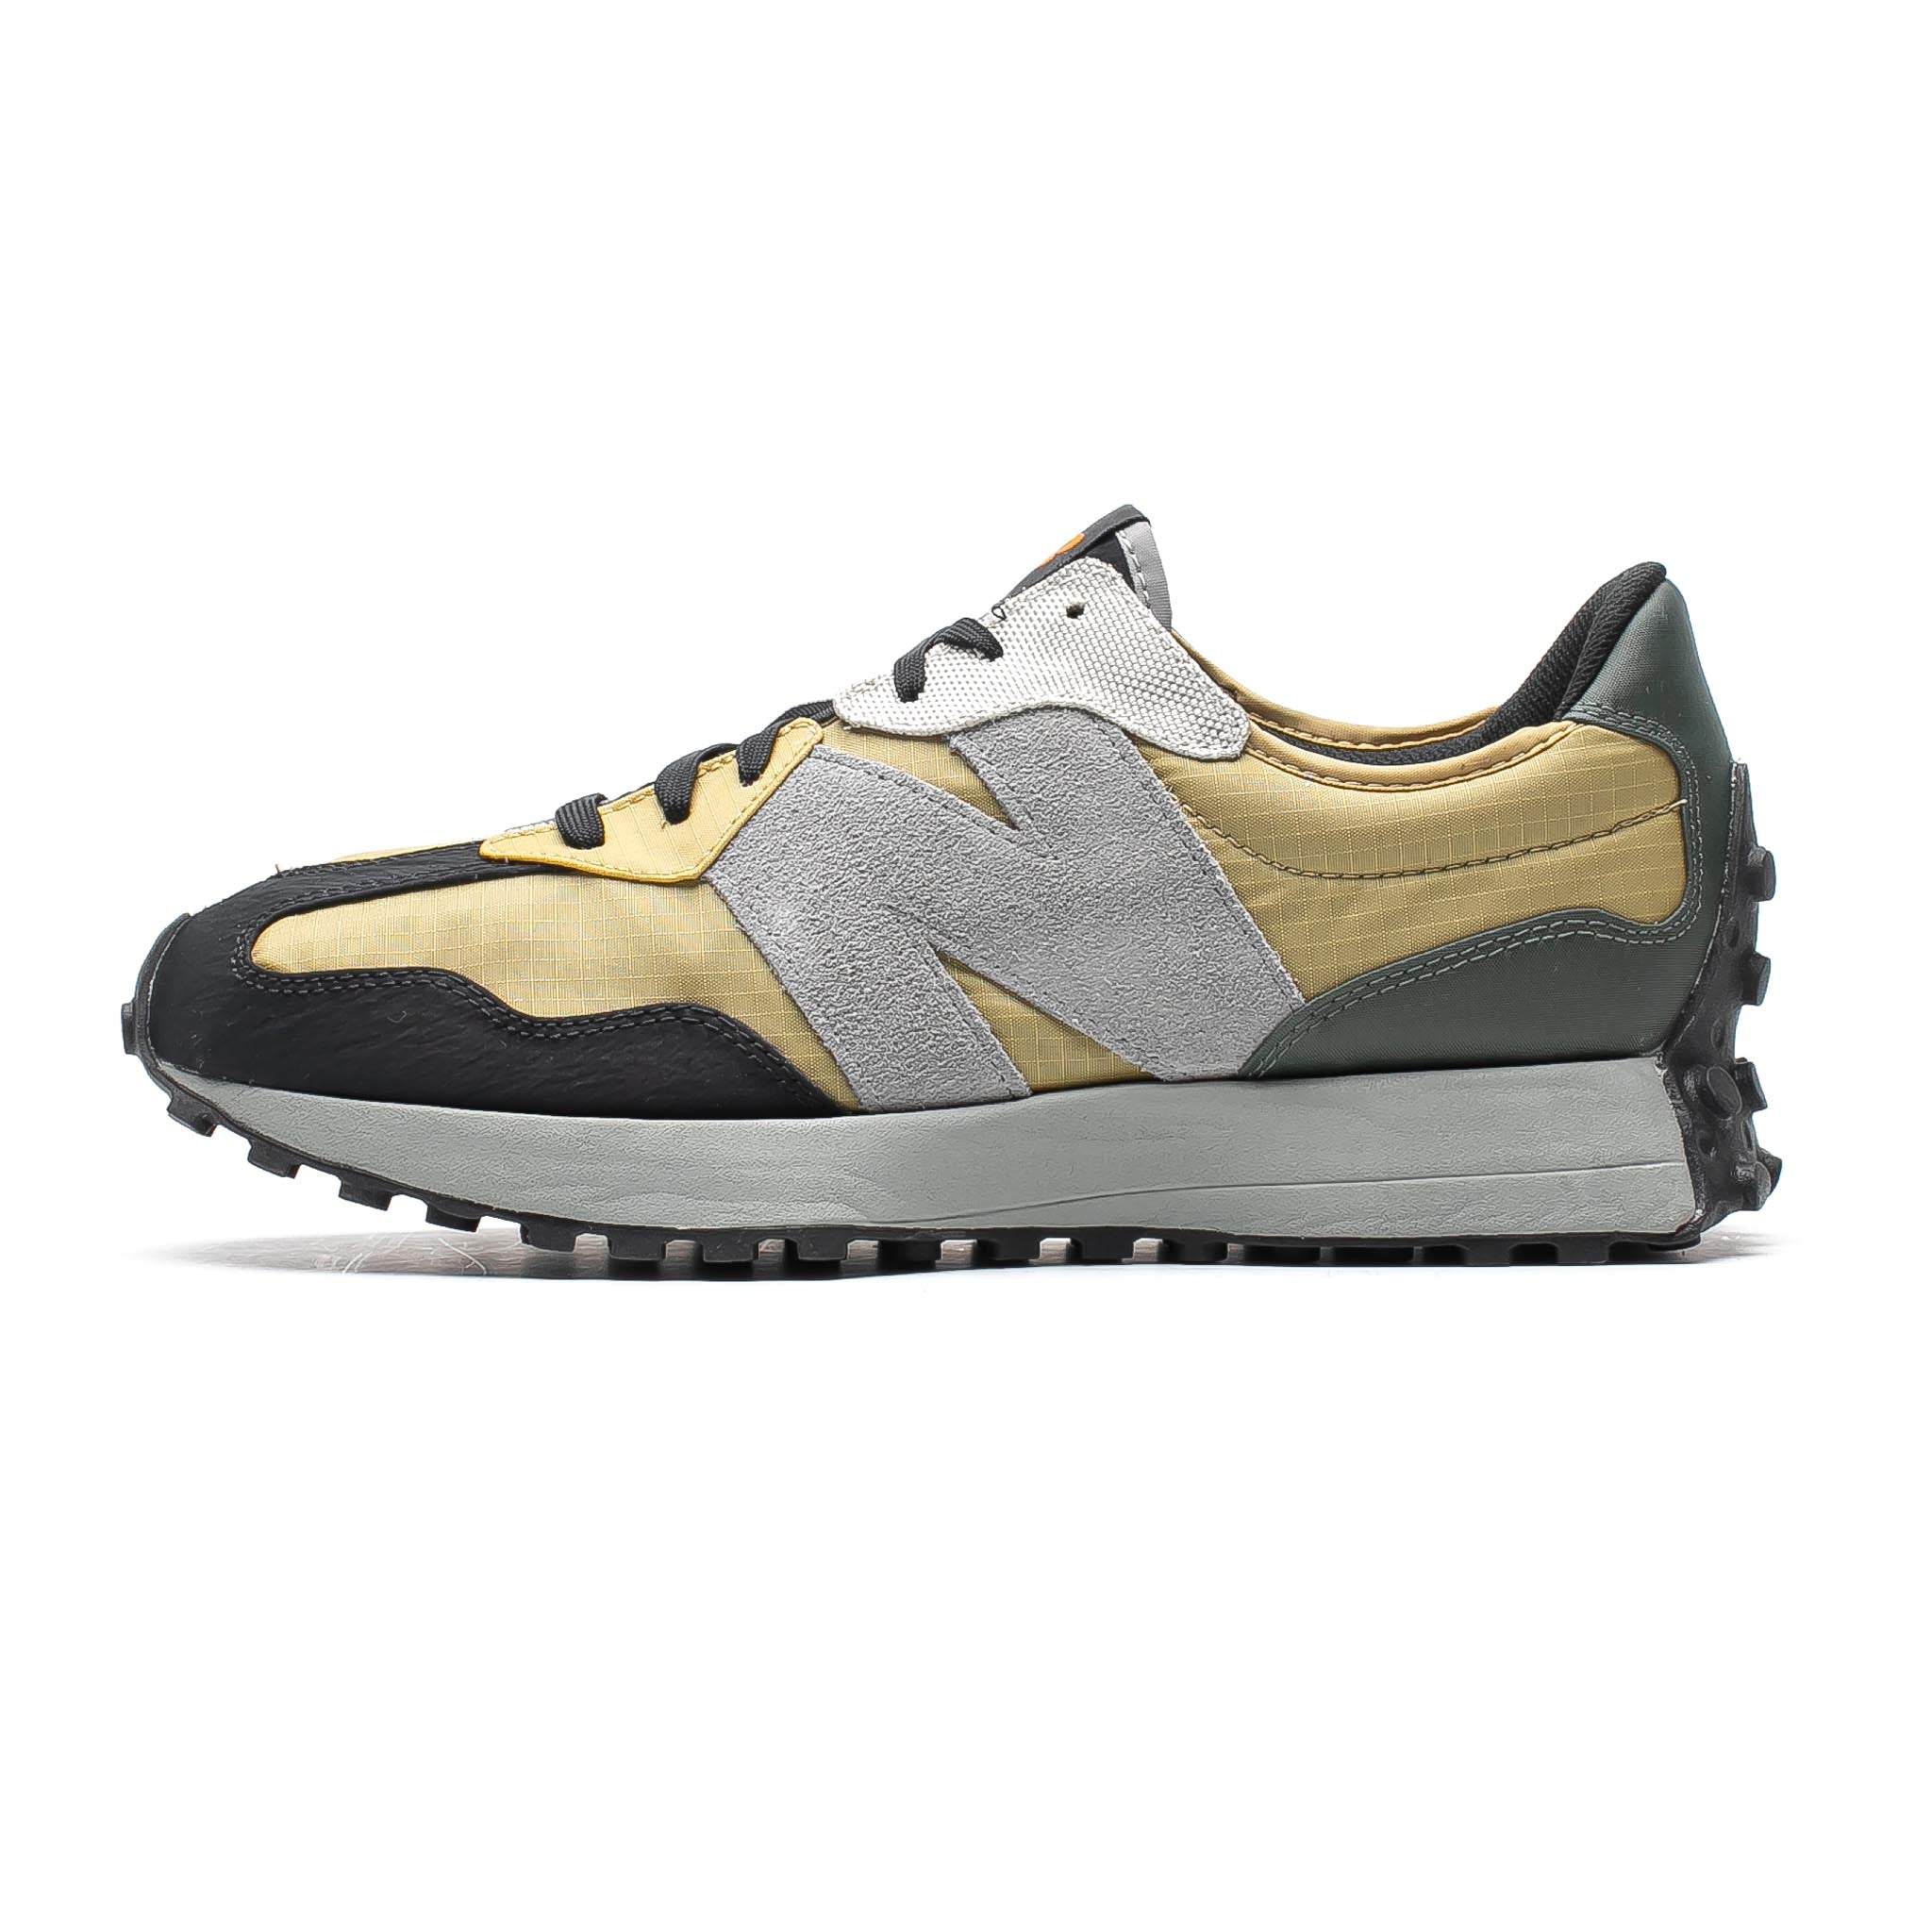 New Balance MS327PB 'Golden Poppy'